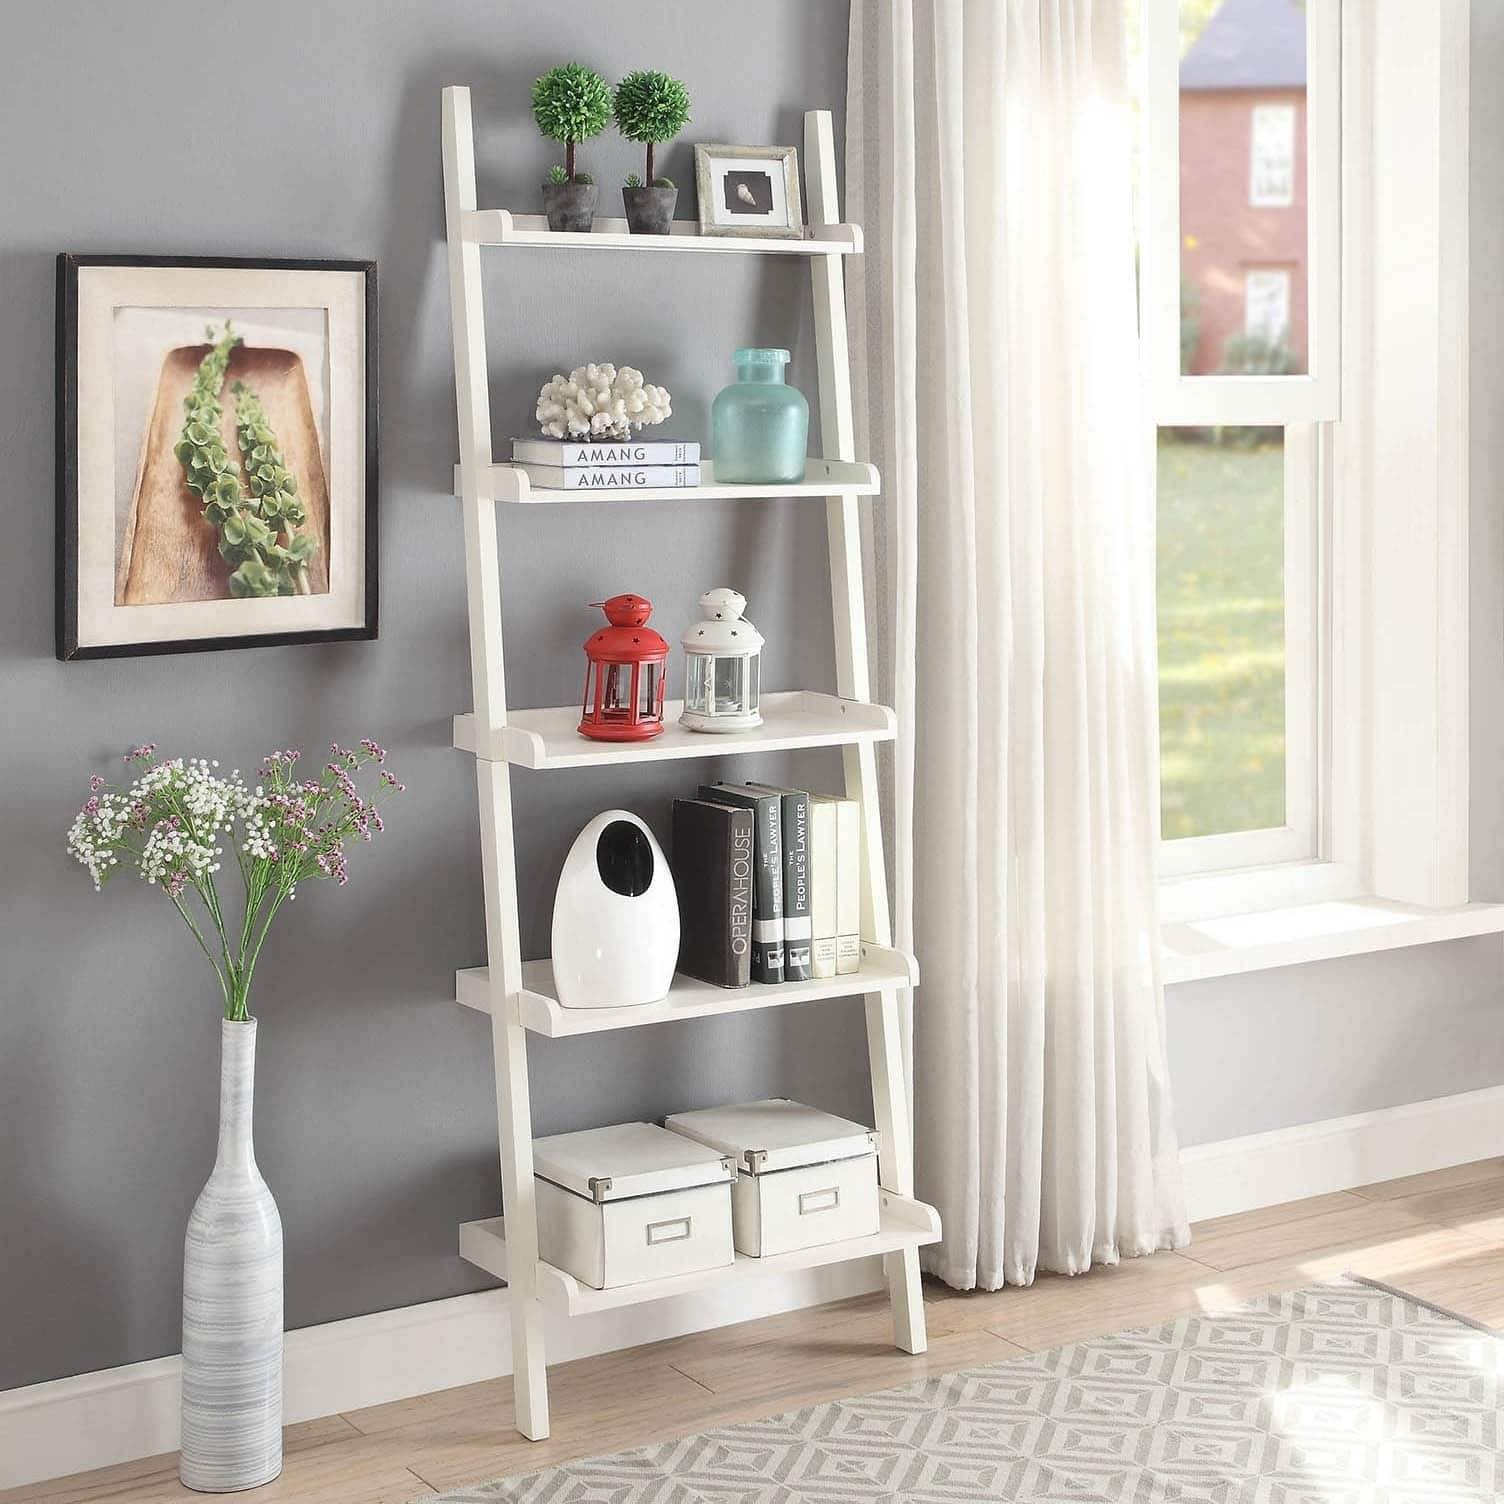 Serenity Now Ikea Shopping Trip And Home Decor Ideas: Bookshelves & Bookcases For Less